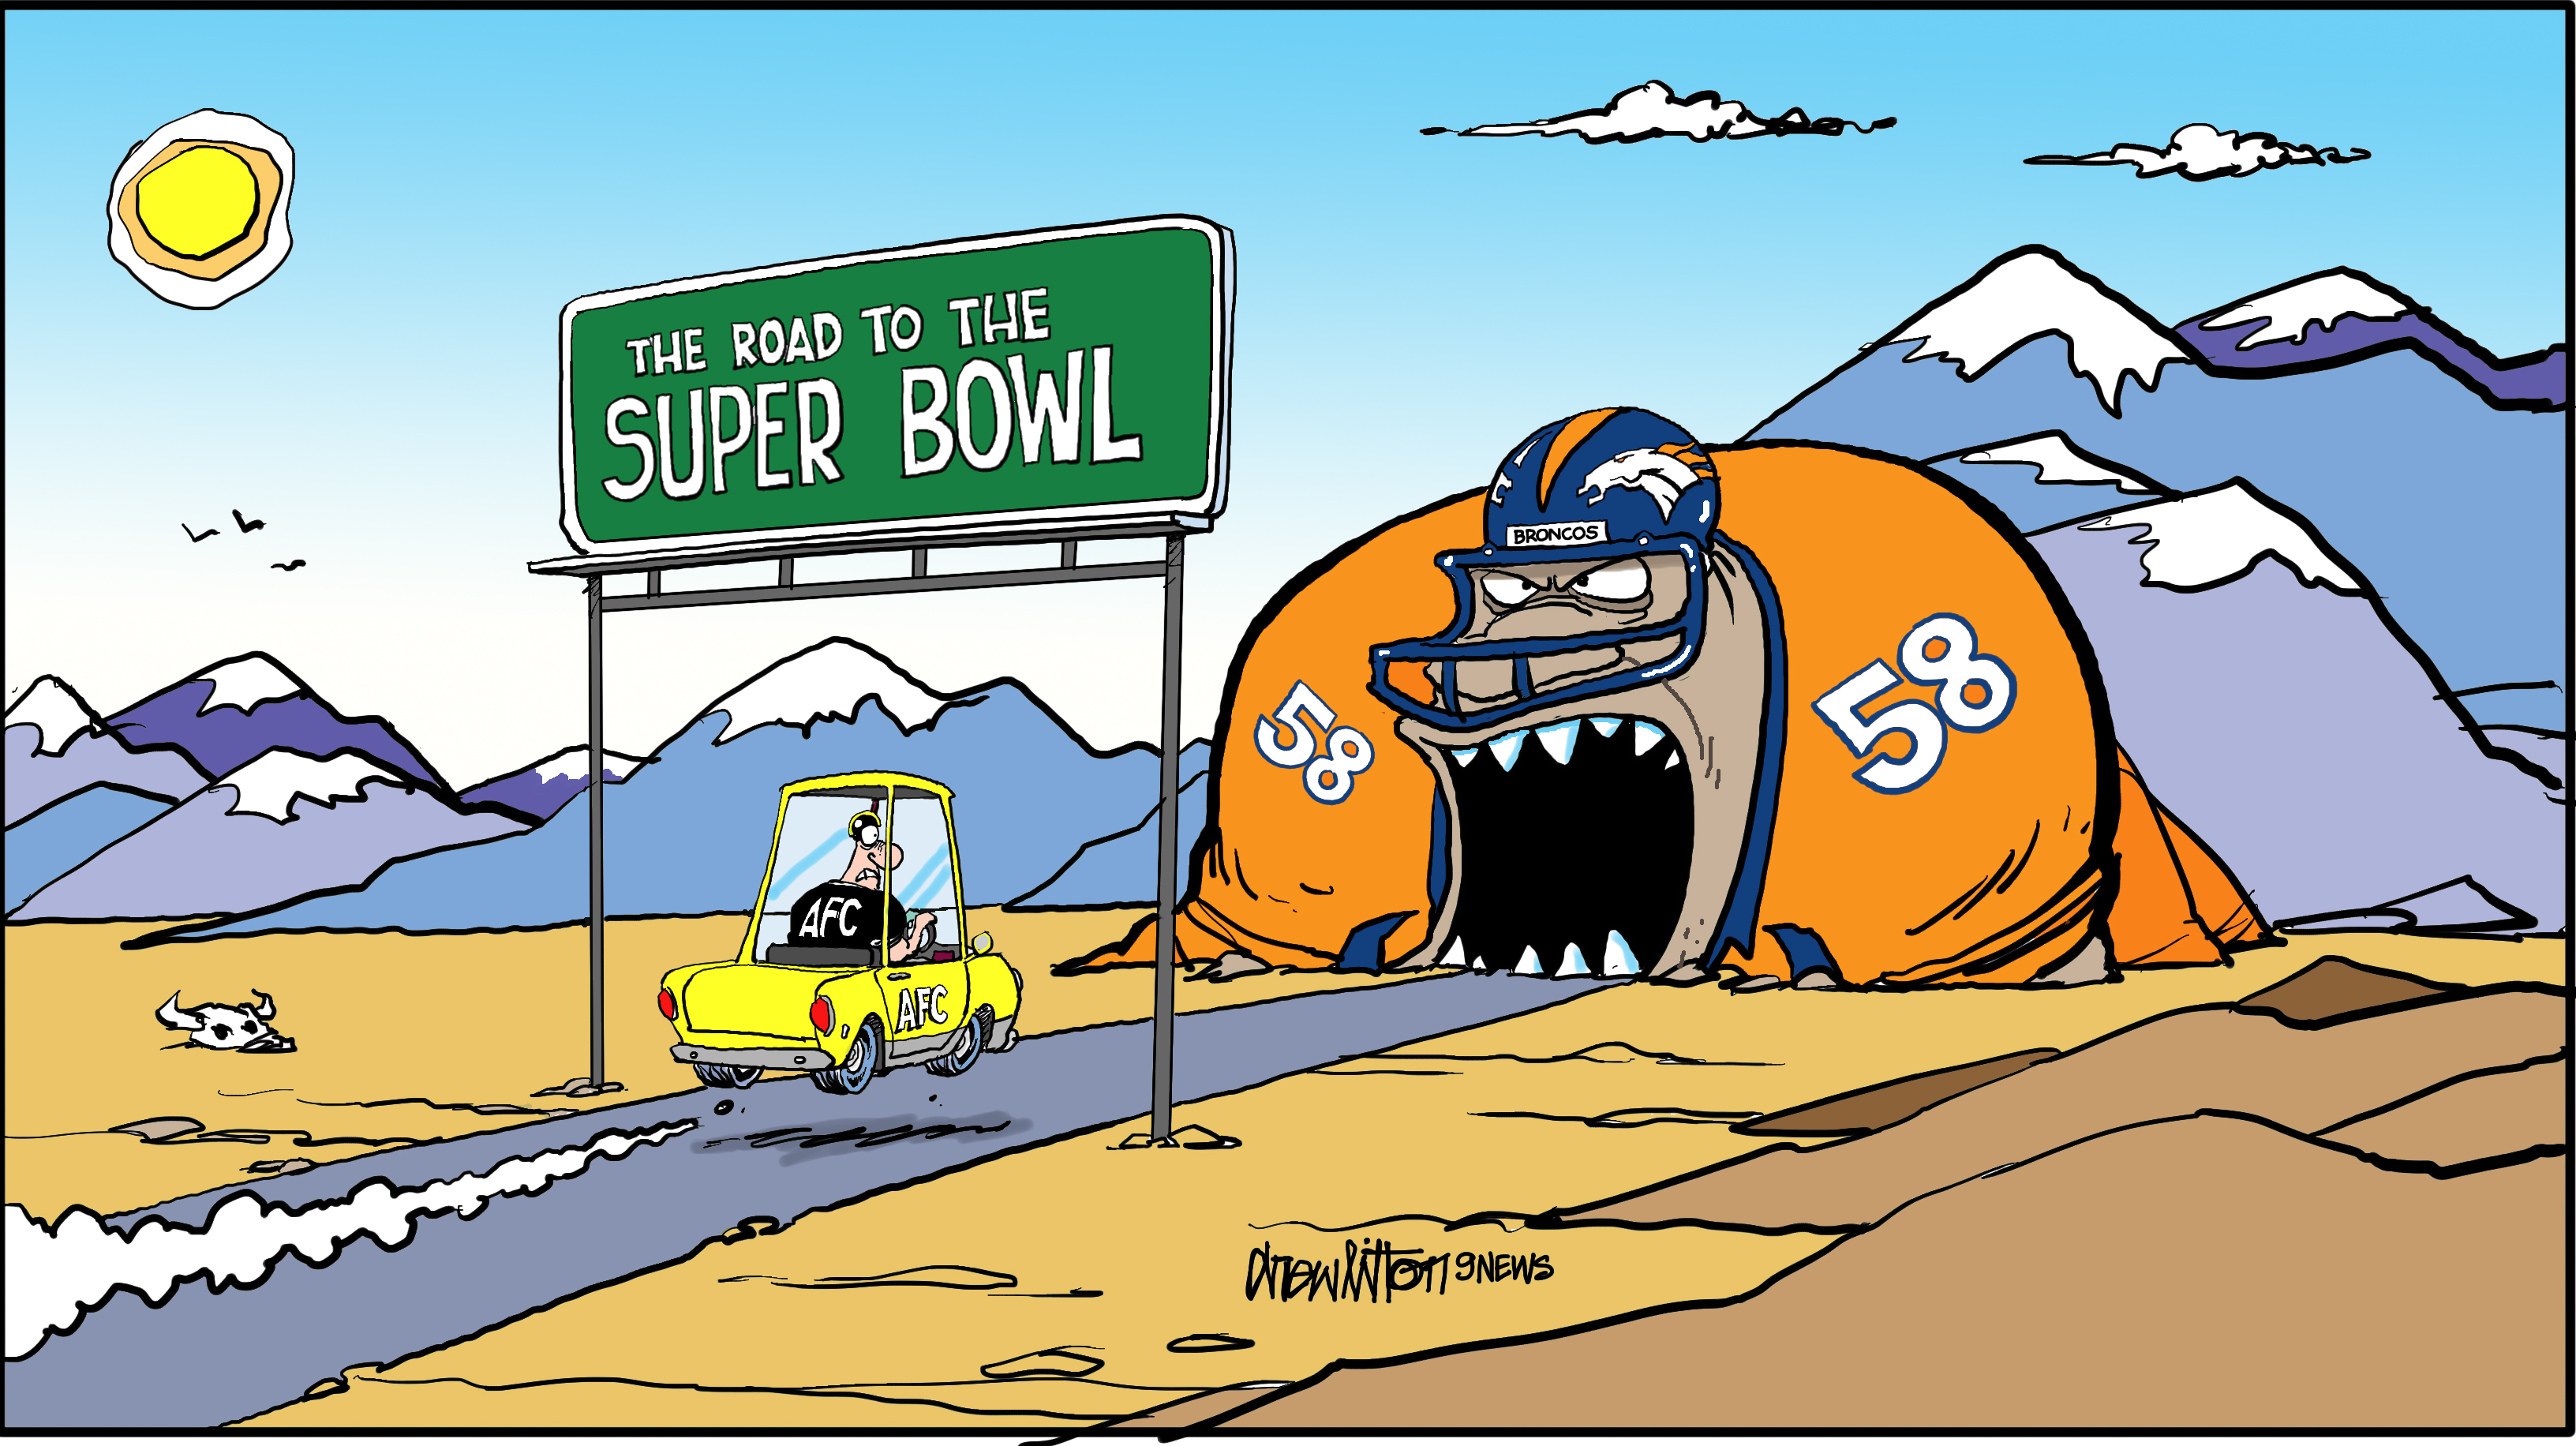 theroadtothesuperbowl